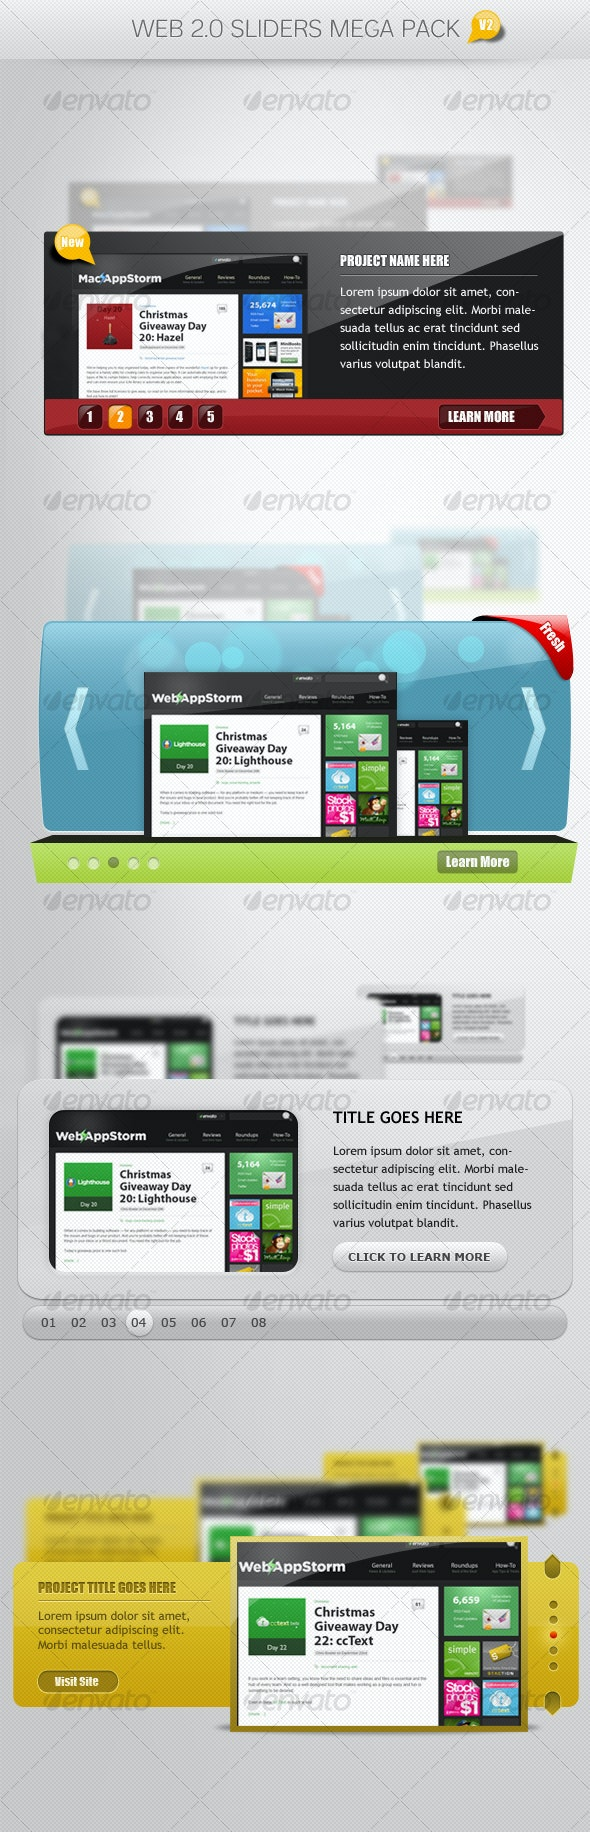 Web 2.0 Sliders Mega Pack V2 - Web Elements